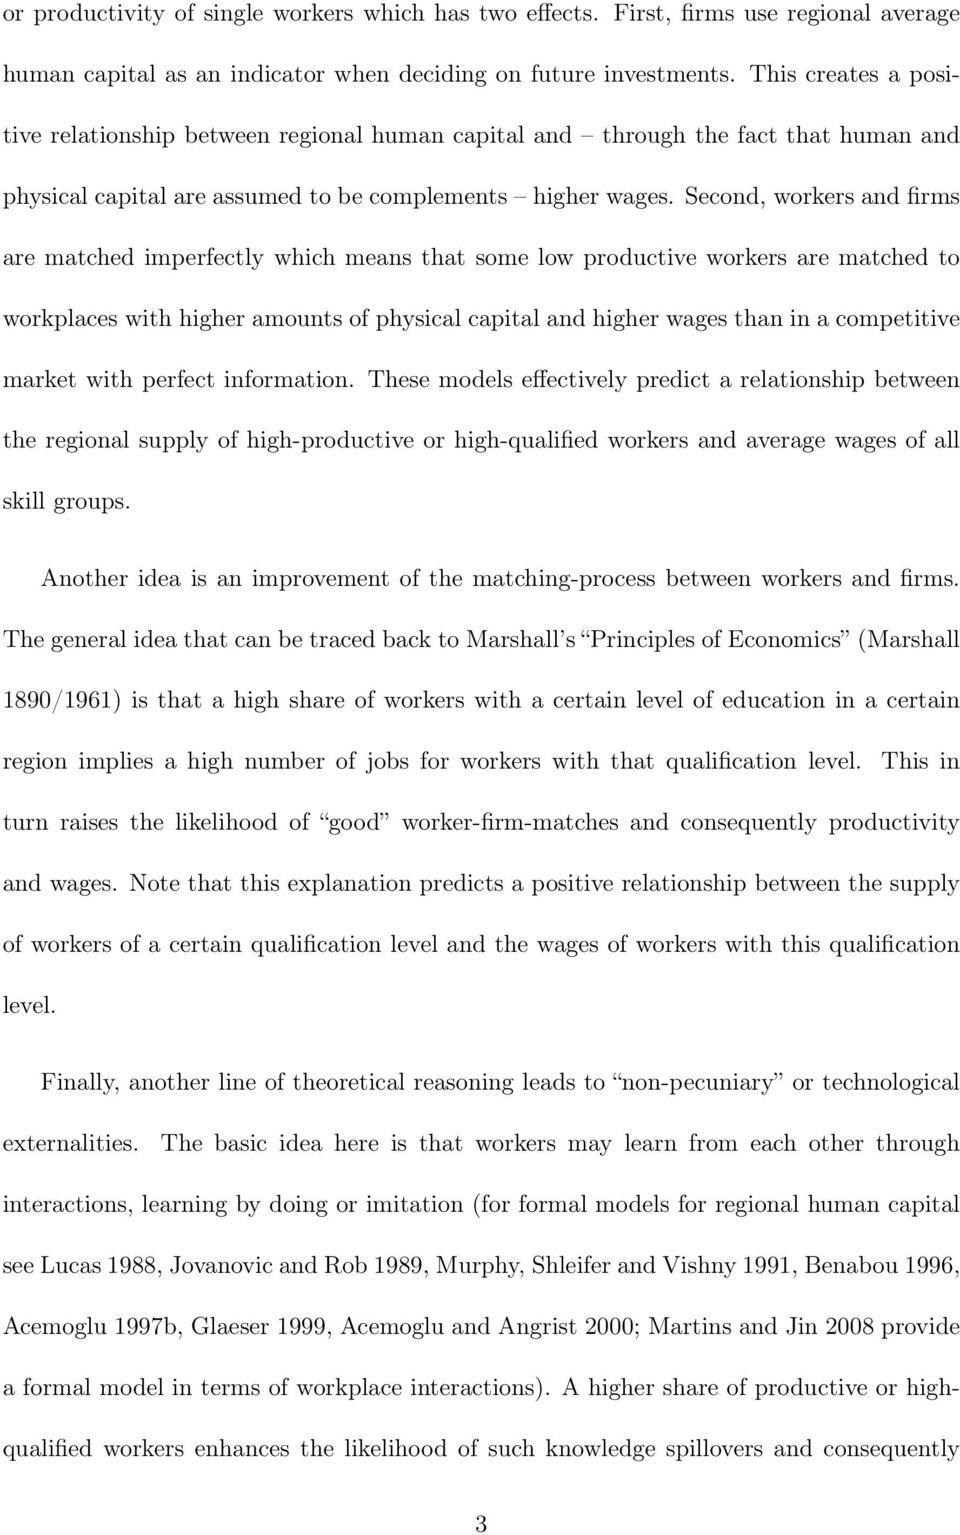 Second, workers and firms are matched imperfectly which means that some low productive workers are matched to workplaces with higher amounts of physical capital and higher wages than in a competitive